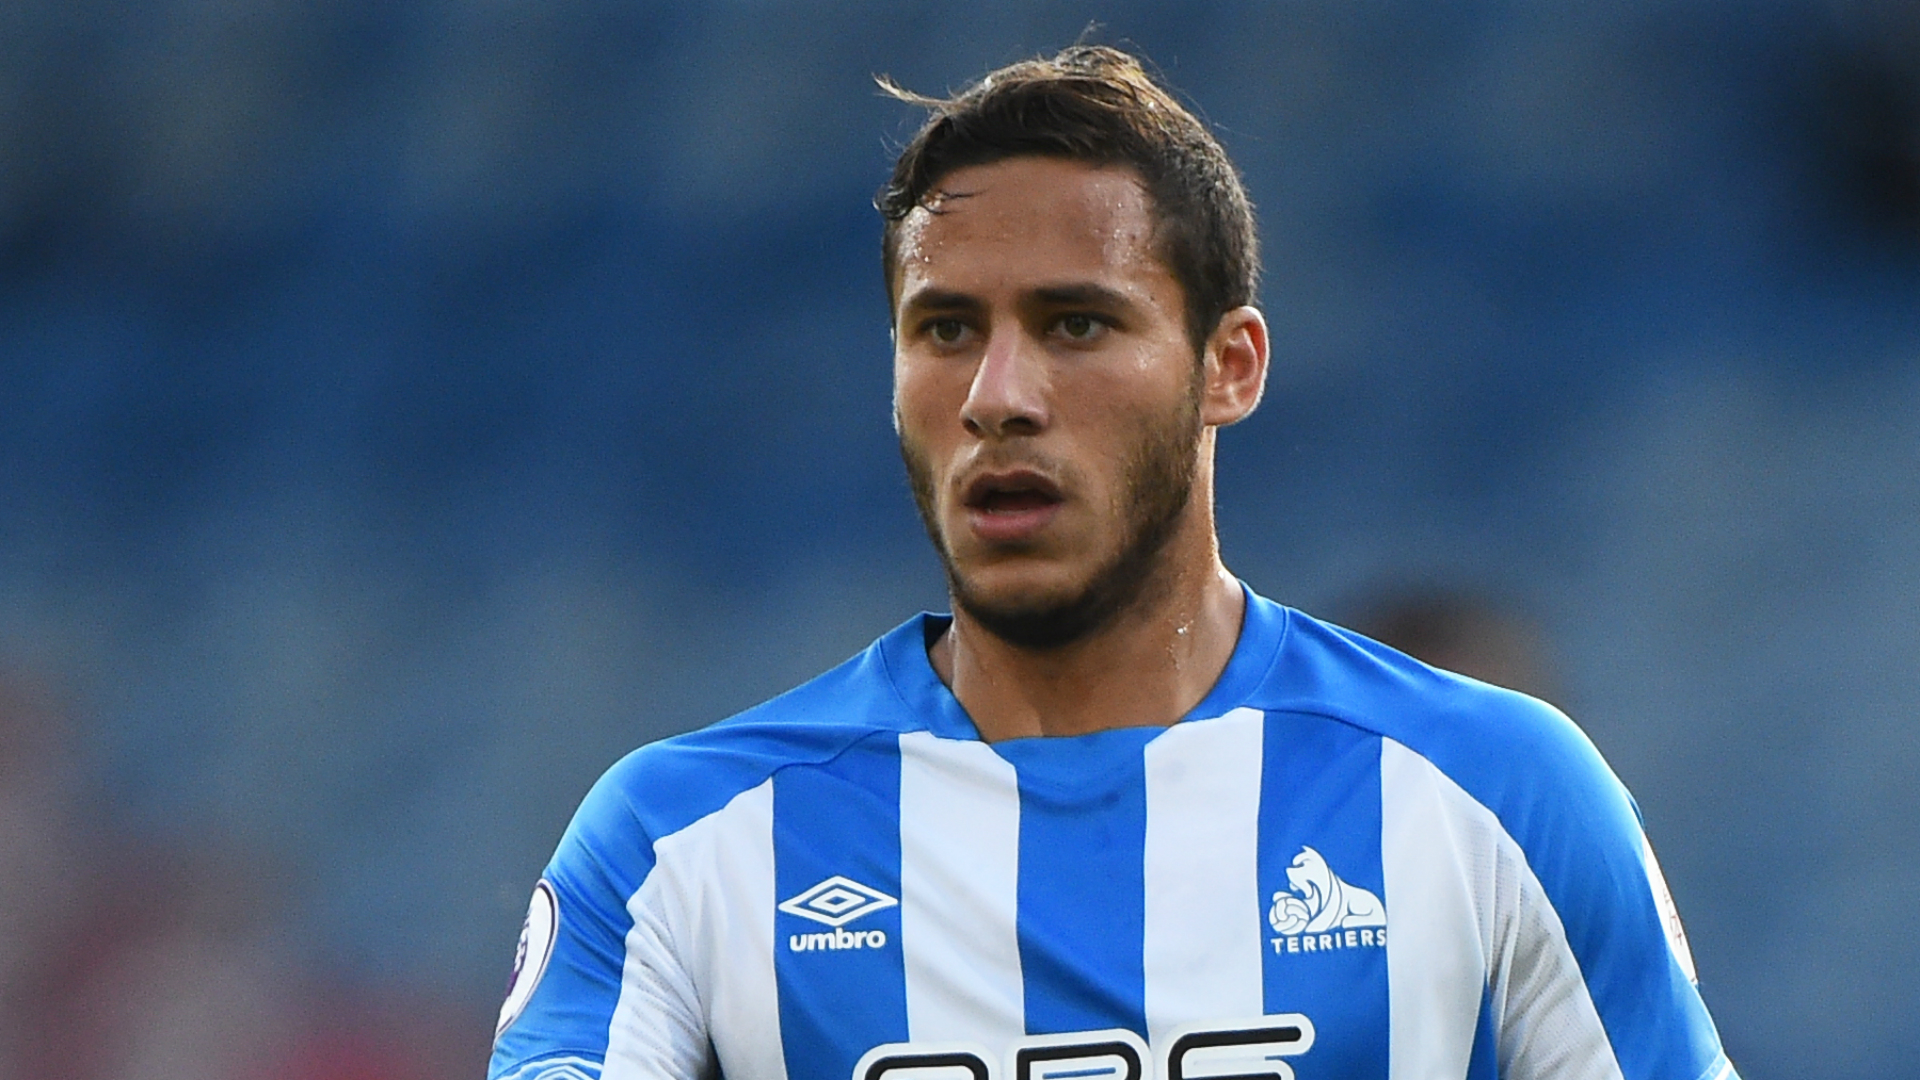 Ex-Stoke City winger Sobhi to serve one-match suspension